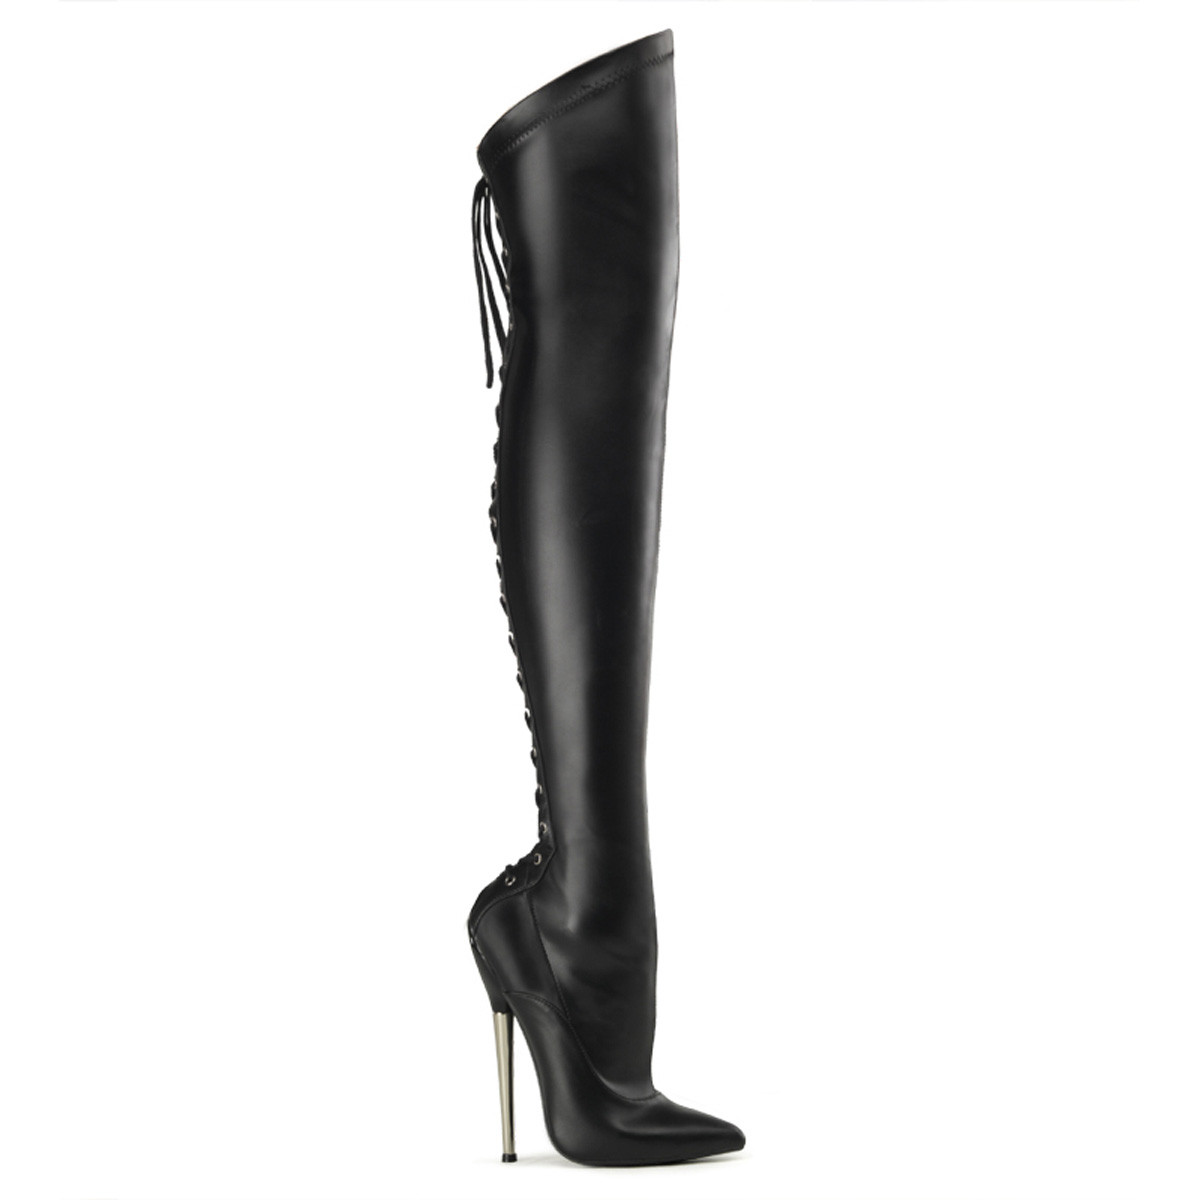 "6 1/4"" Solid Brass Heel Back Lace-Up Thigh High Boot*"